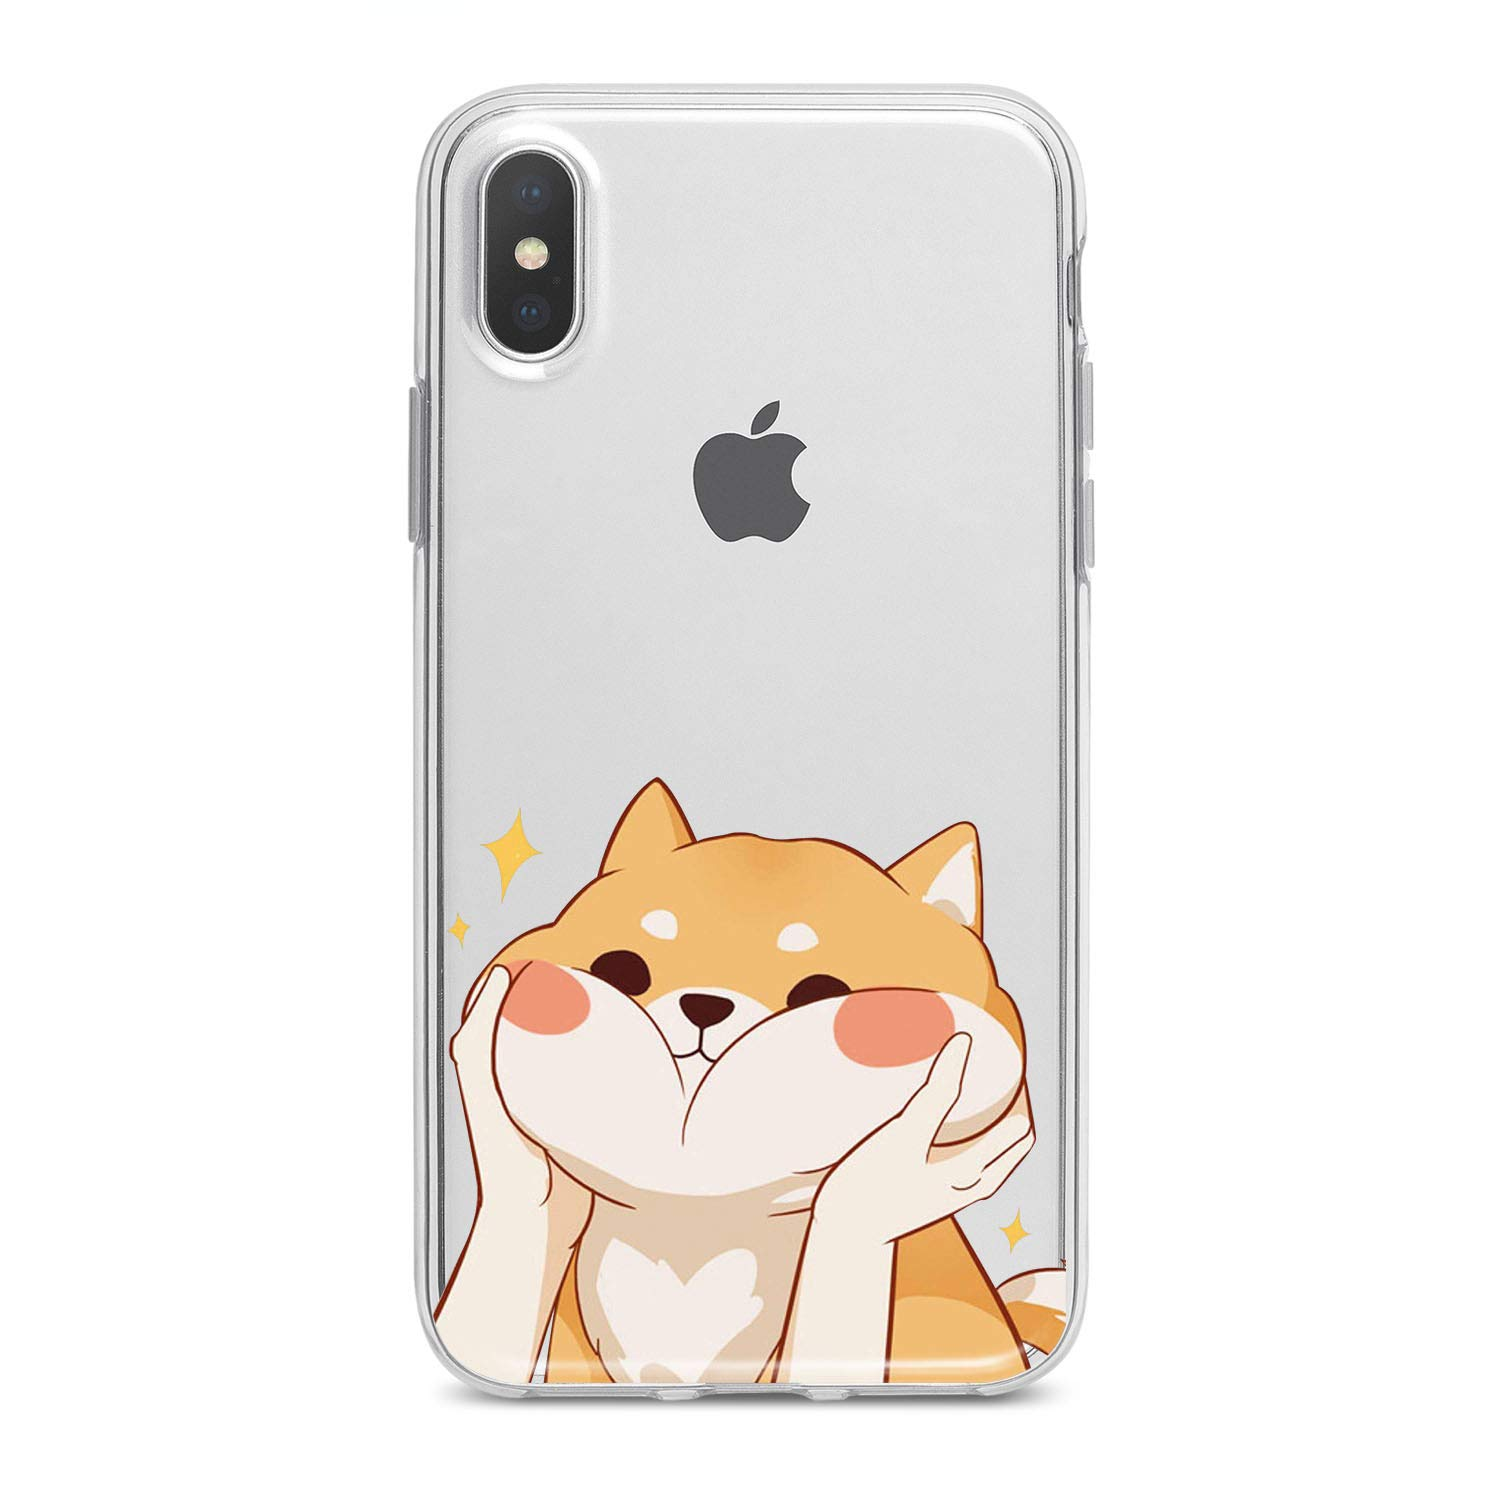 Lex Altern Case for iPhone X 8 Plus 7 6s 6 SE 5s 5 TPU Clear Kawaii Apple Cute Phone Shiba Inu Cover Adorable Print Protective Light Weight Doggy Women Soft Silicone Transparent Flexible Teen Girls